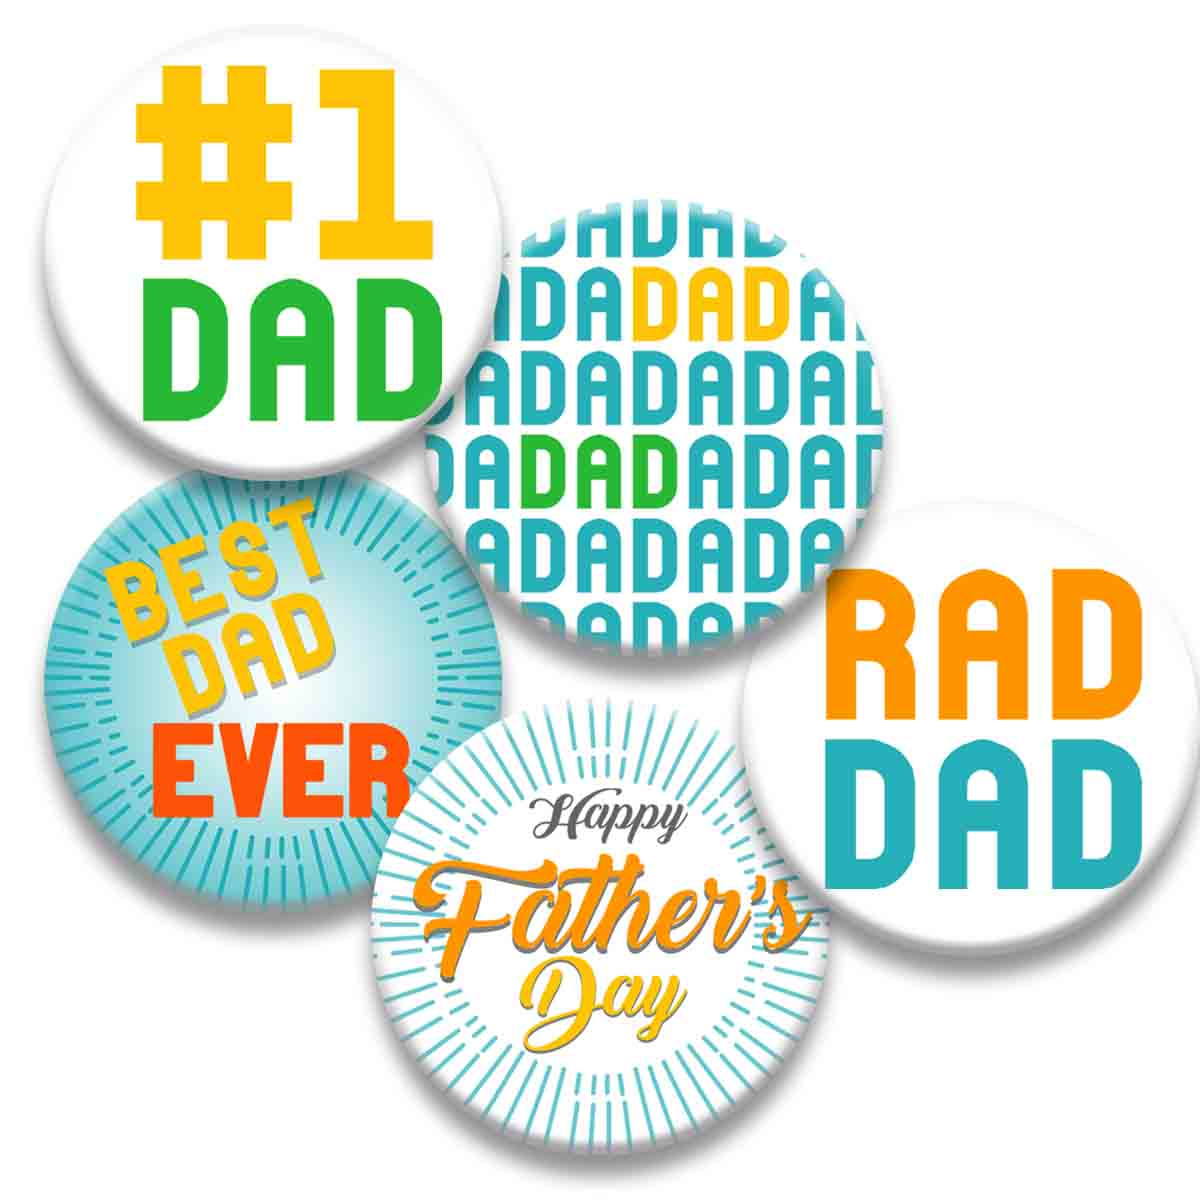 Printable Button Art  - Fathers Day